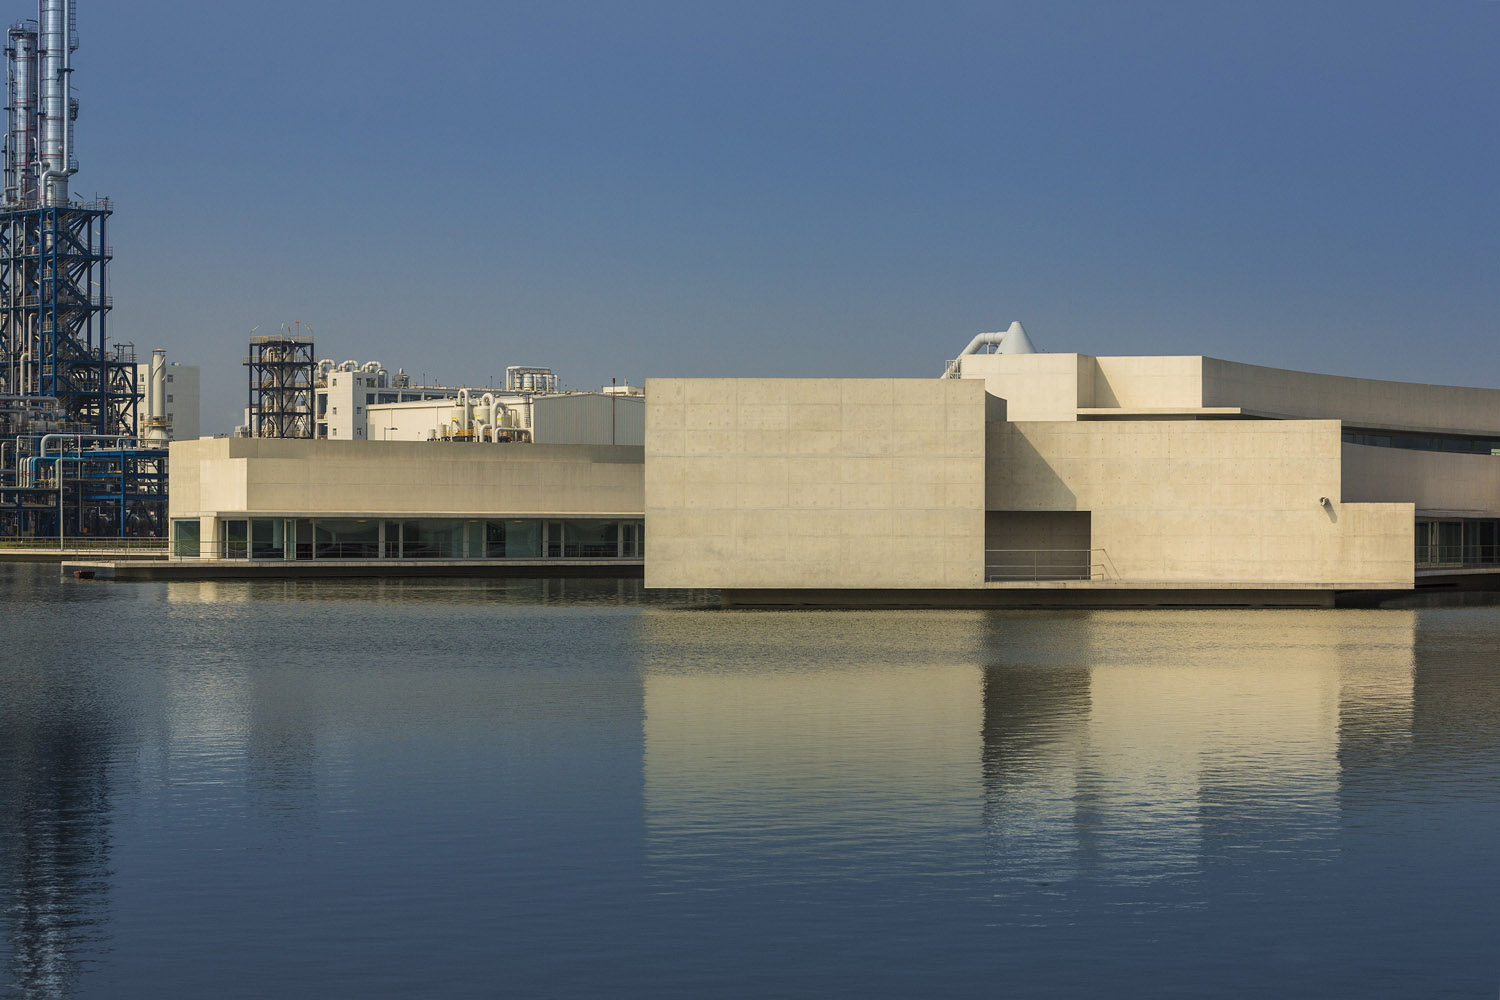 mm_The Building on the Water design by Álvaro Siza + Carlos Castanheira_13